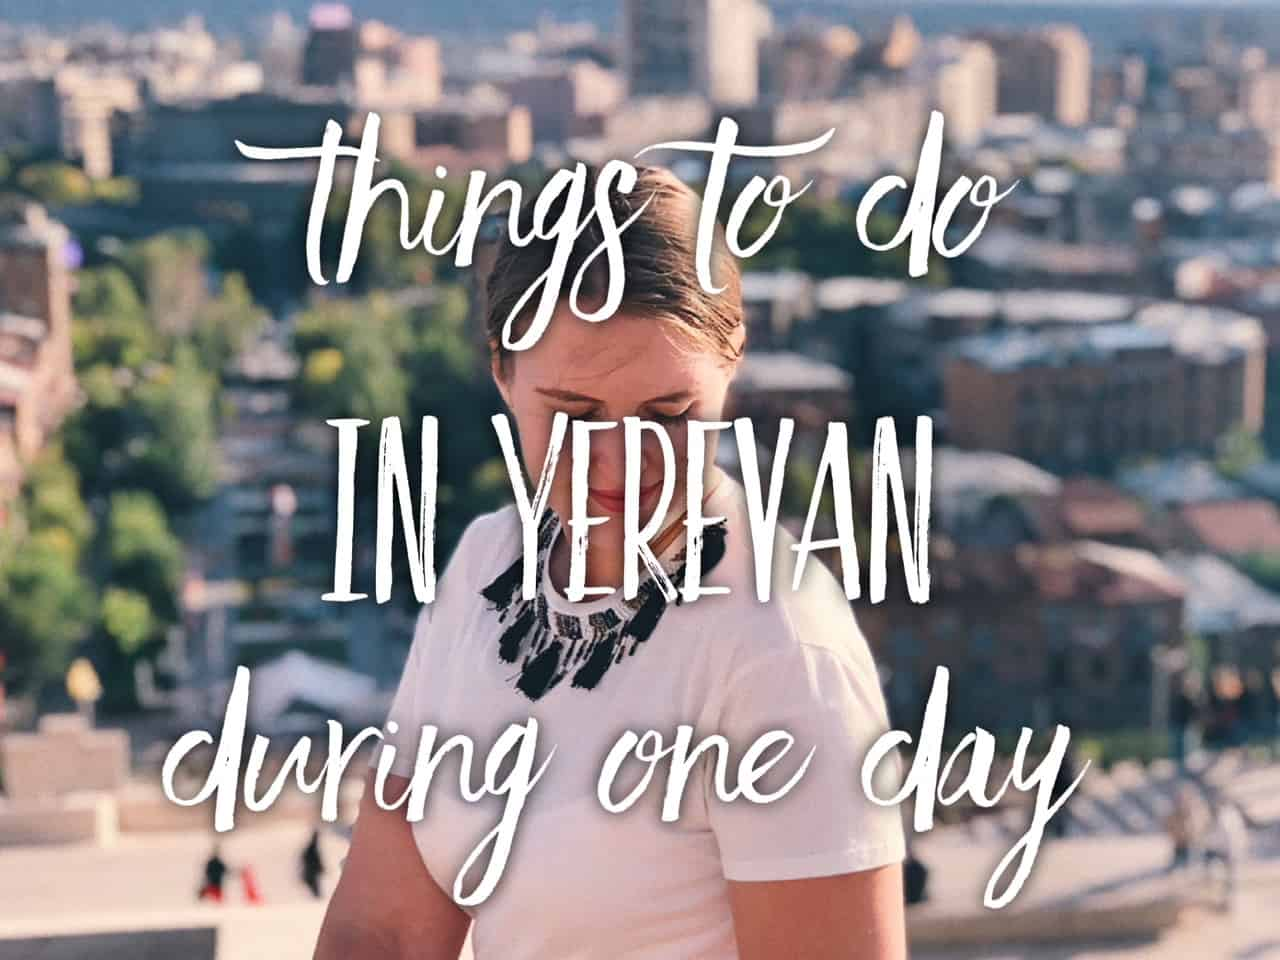 Things to do in Yerevan, Armenia. One day in Yerevan | Tripsget, things to do in Yerevan, Erevan